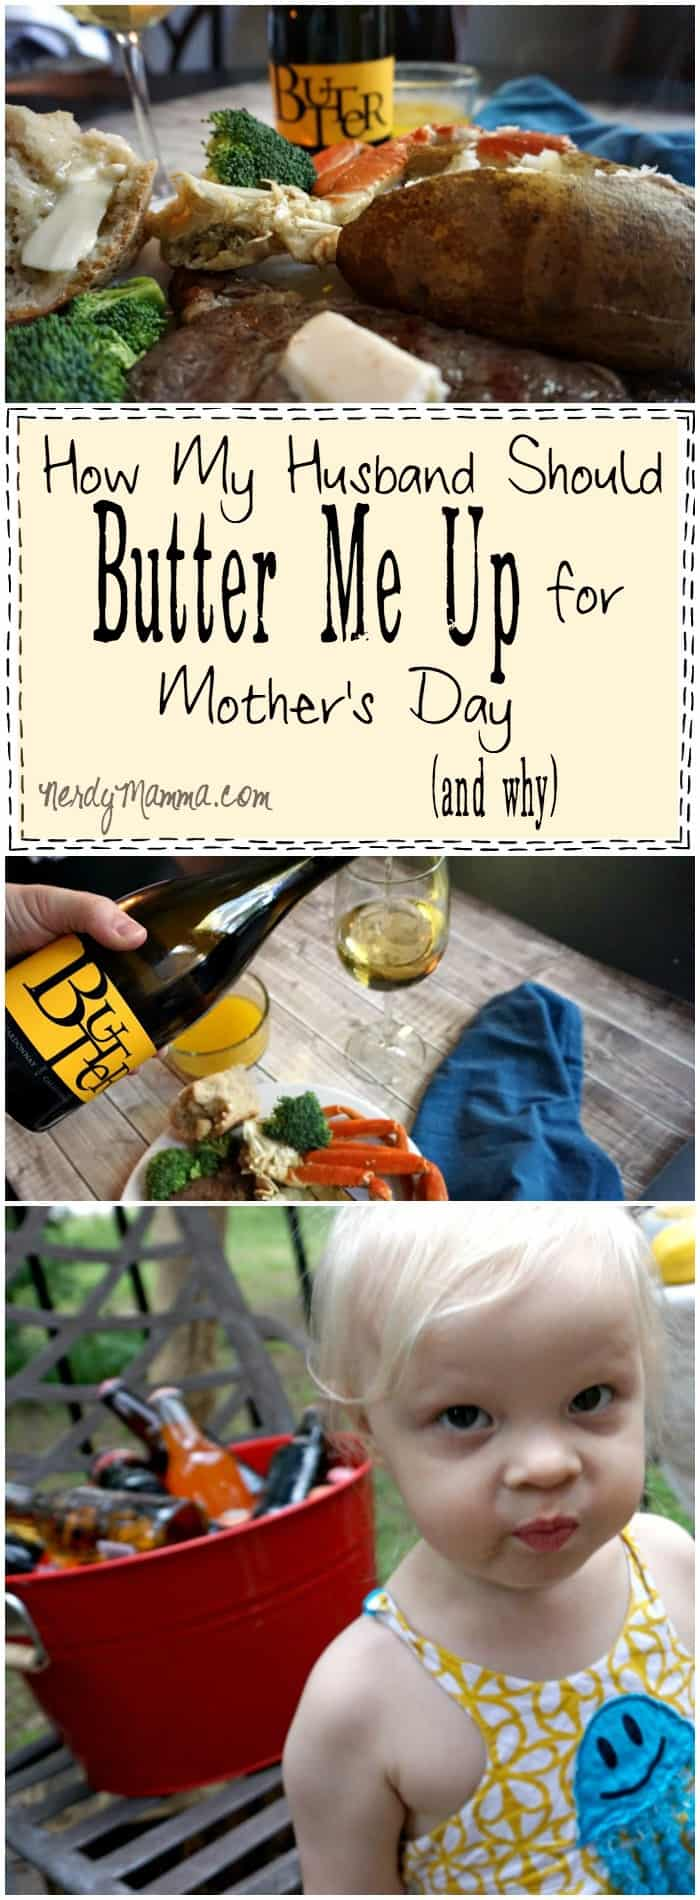 This is SO FUNNY! I mean--this mom really does deserve to be buttered-up for Mother's Day...and this is just a taste of what she's been through! LOL!